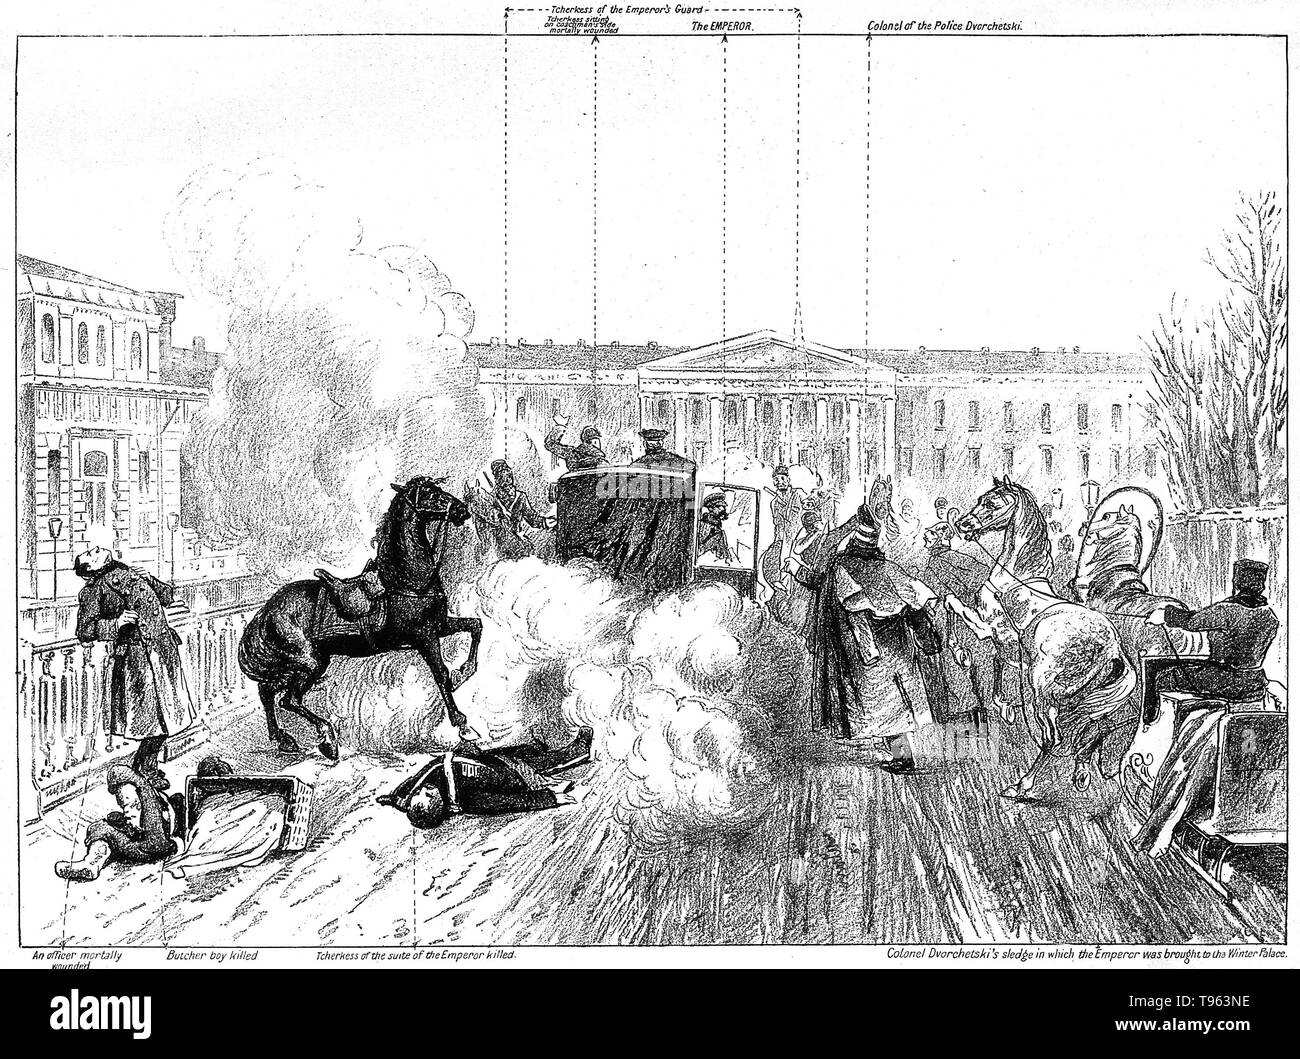 The assassination of Tsar Alexander II: the place outside the Winter Palace in St. Petersburg is strewn with corpses and debris of the bomb-explosion, while Alexander emerges alive from his coach, only to be killed by another bomb shortly afterward. Labeled lithograph. Alexander II (1818 - 1881) was the Emperor of Russia from 2 March 1855 until his assassination on 13 March 1881. He was also the King of Poland and the Grand Duke of Finland. - Stock Image